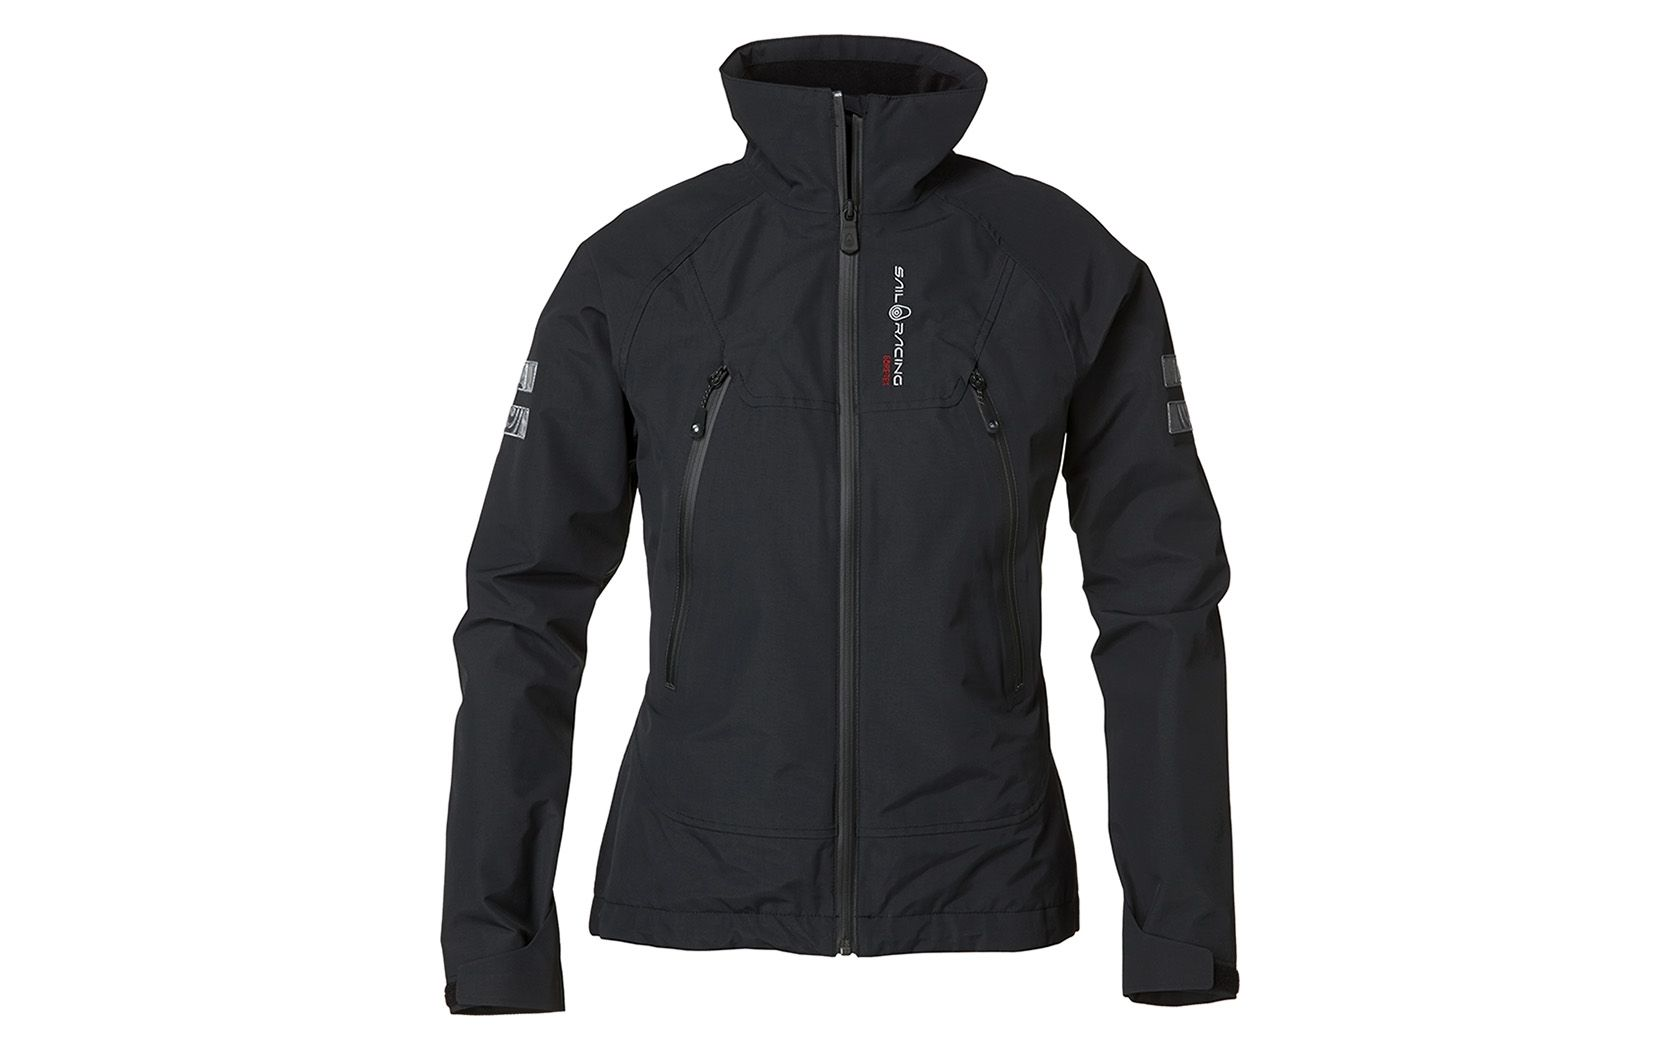 Classic 2 layer GORE TEX® jacket with lining in brushed